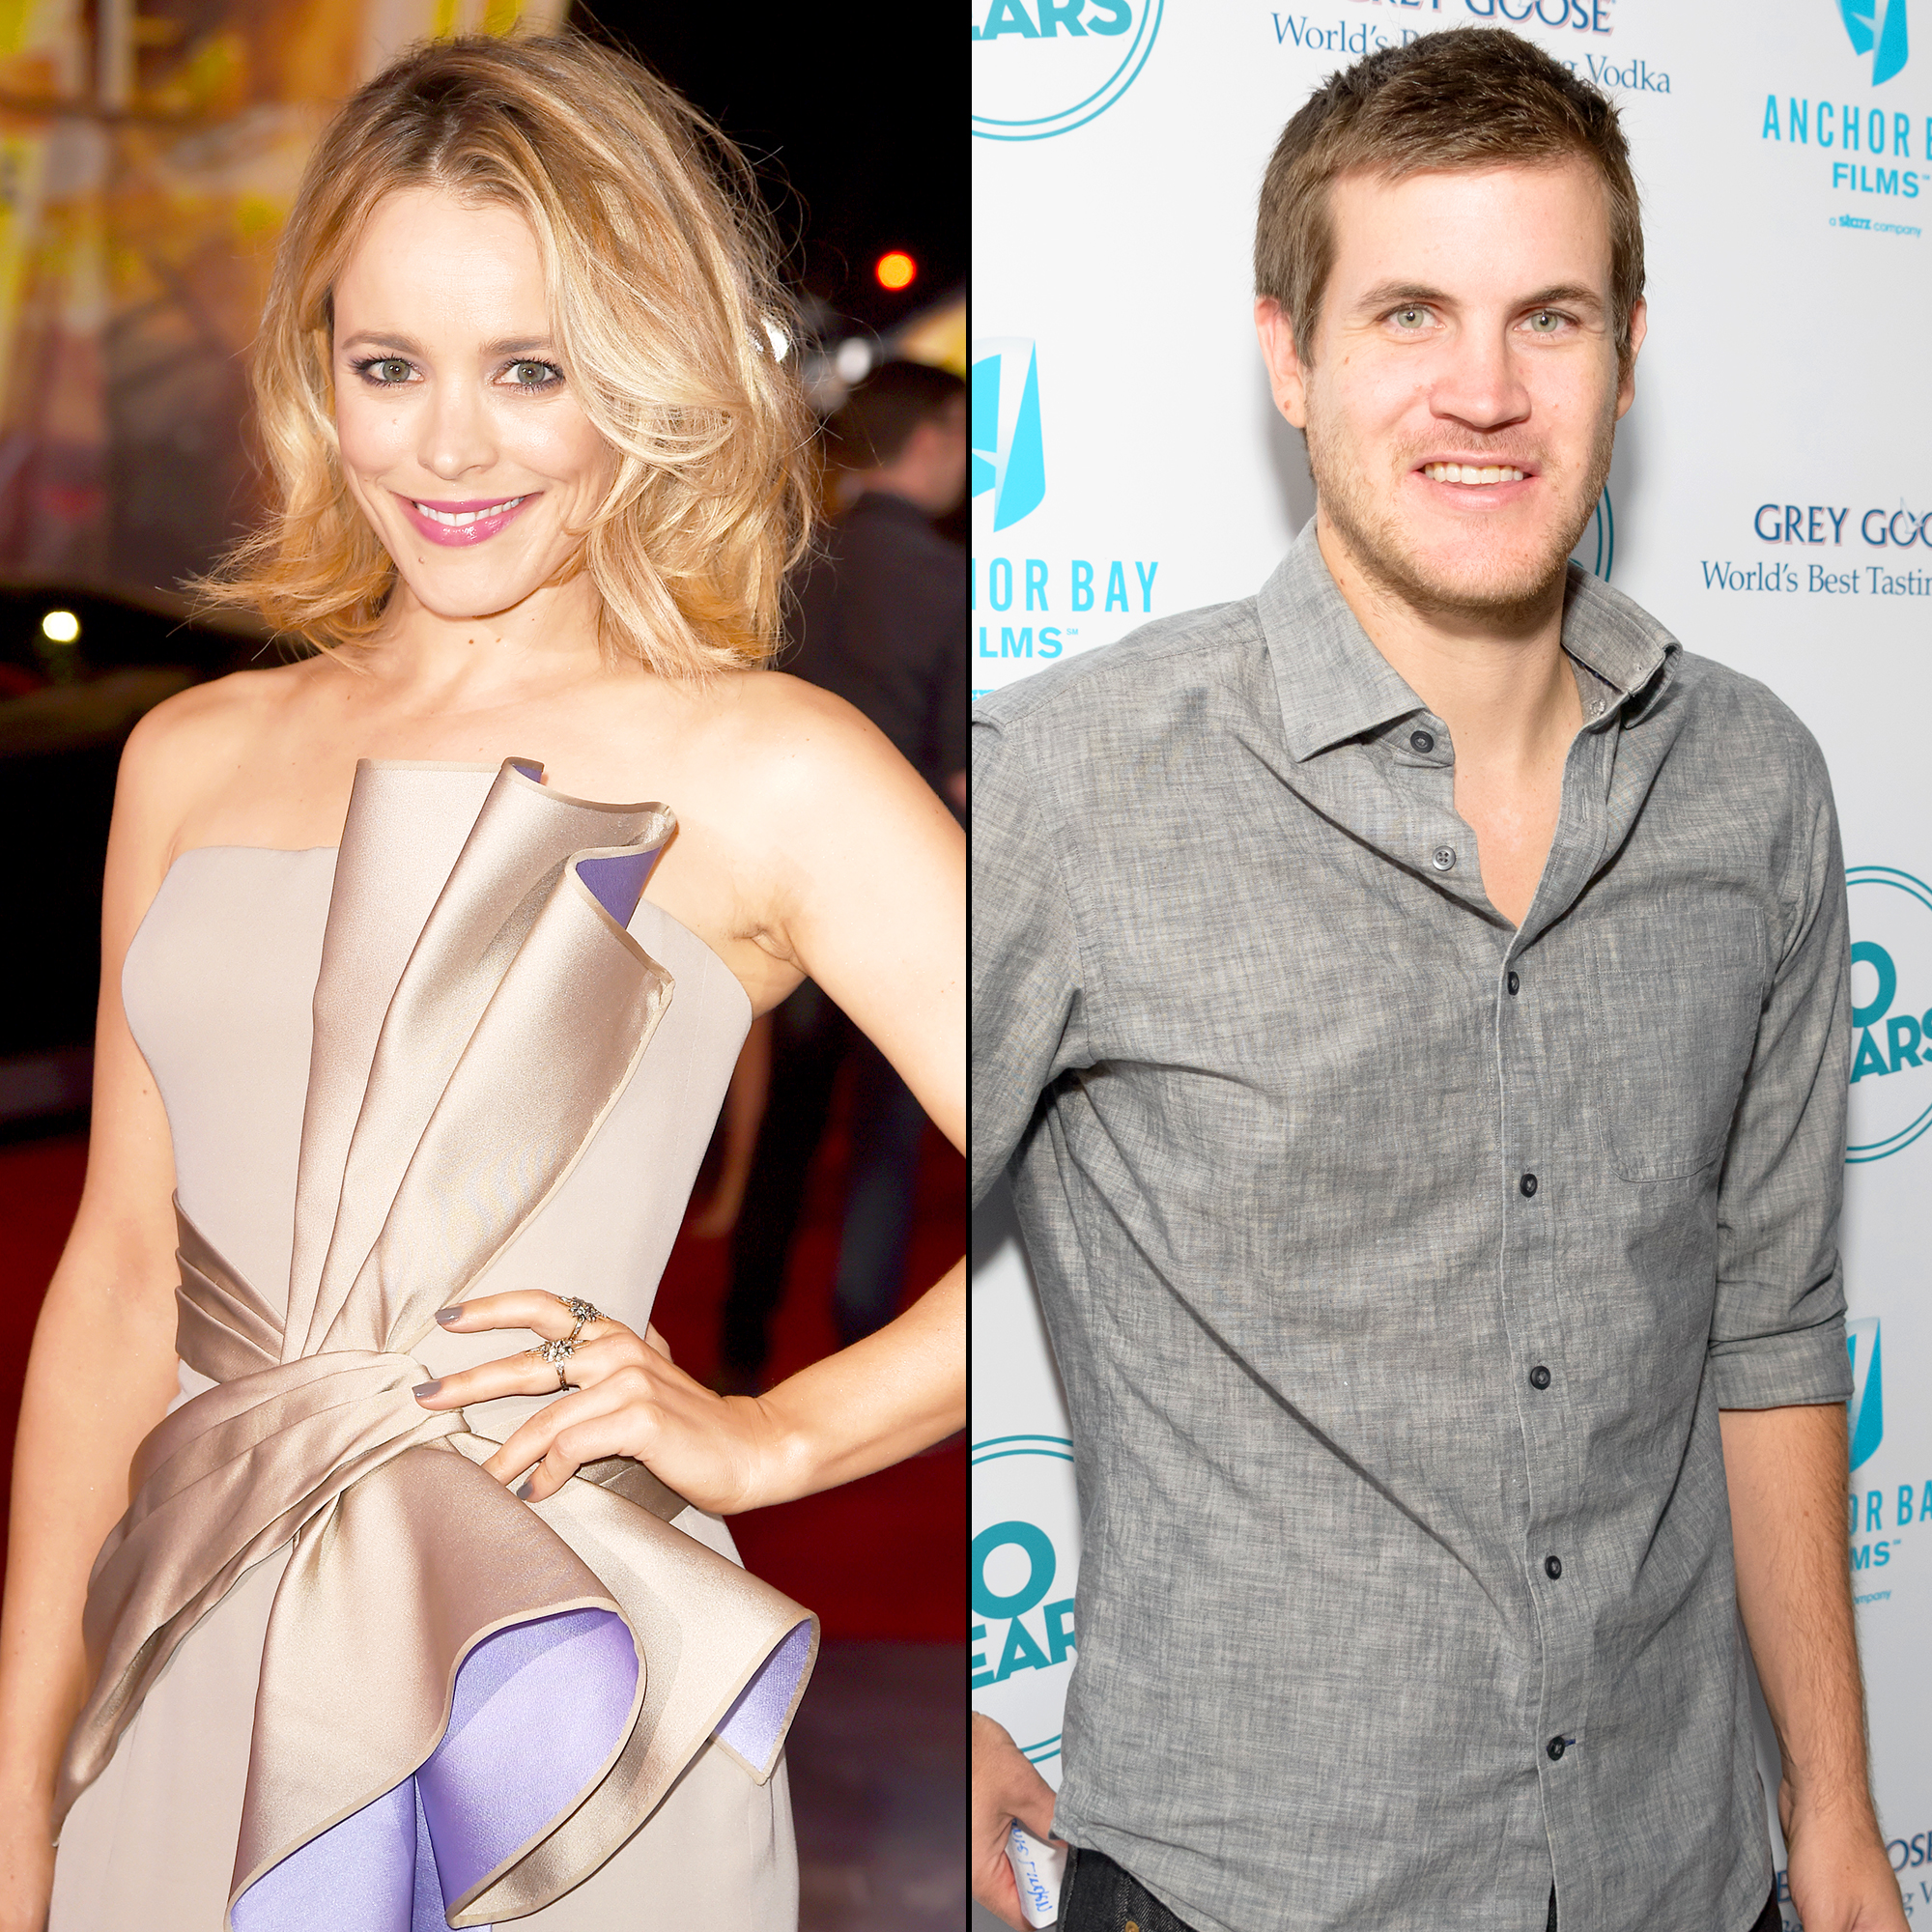 Rachel McAdams expecting her first child